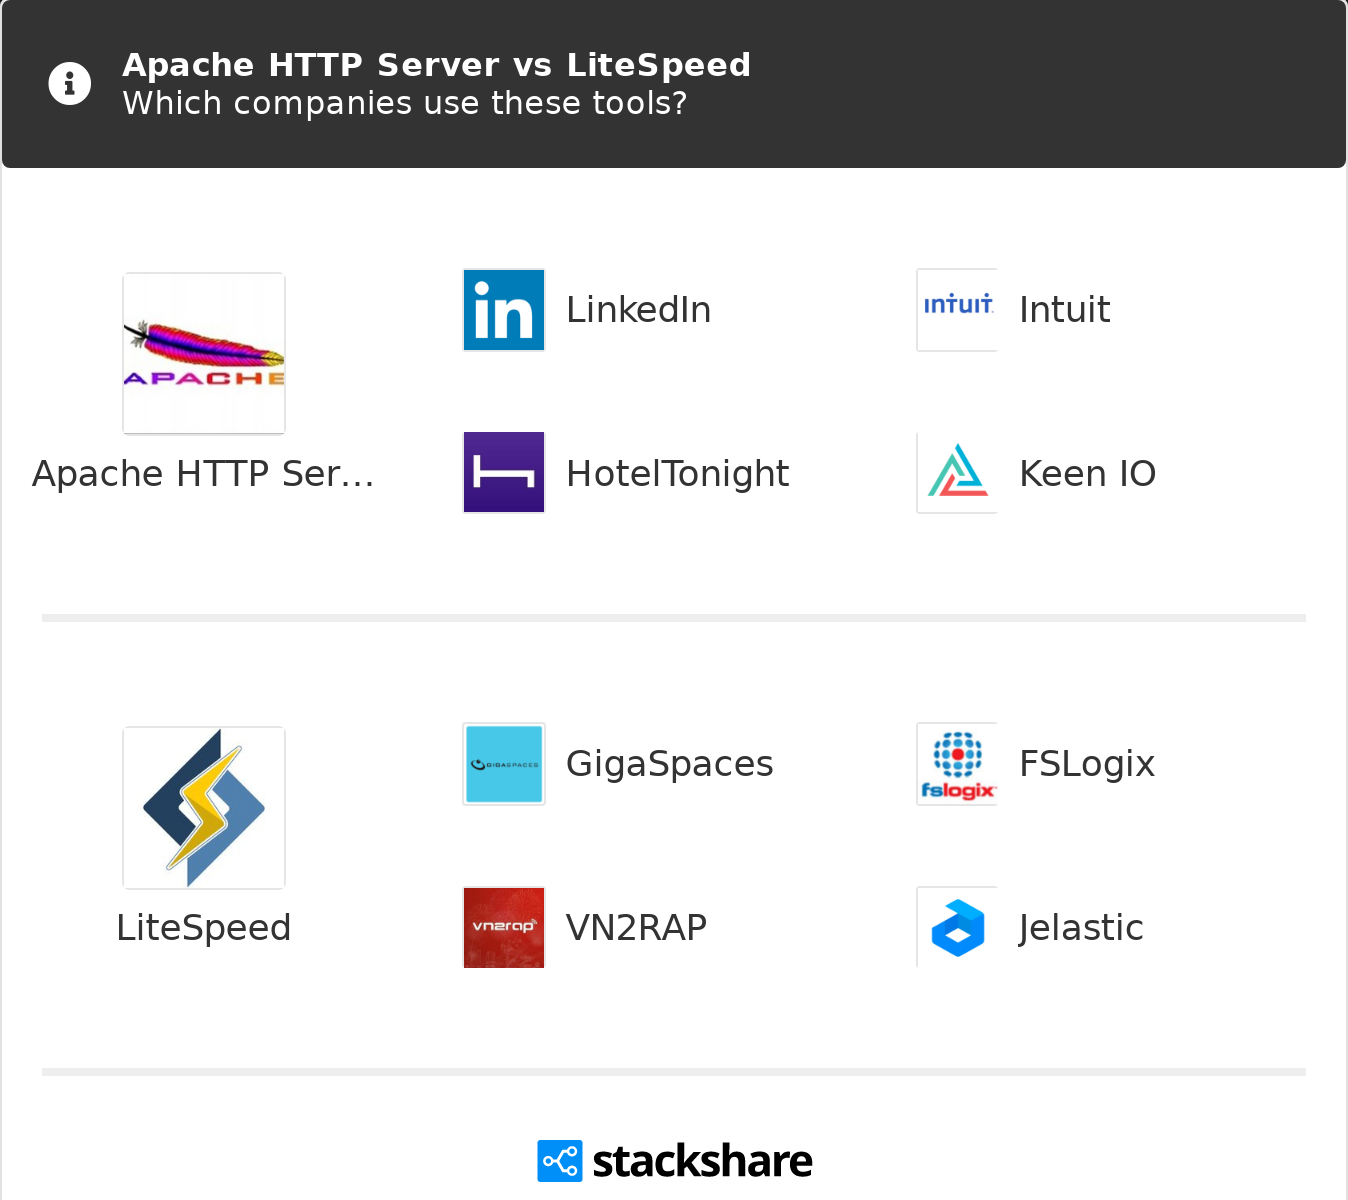 Apache HTTP Server vs LiteSpeed | What are the differences?